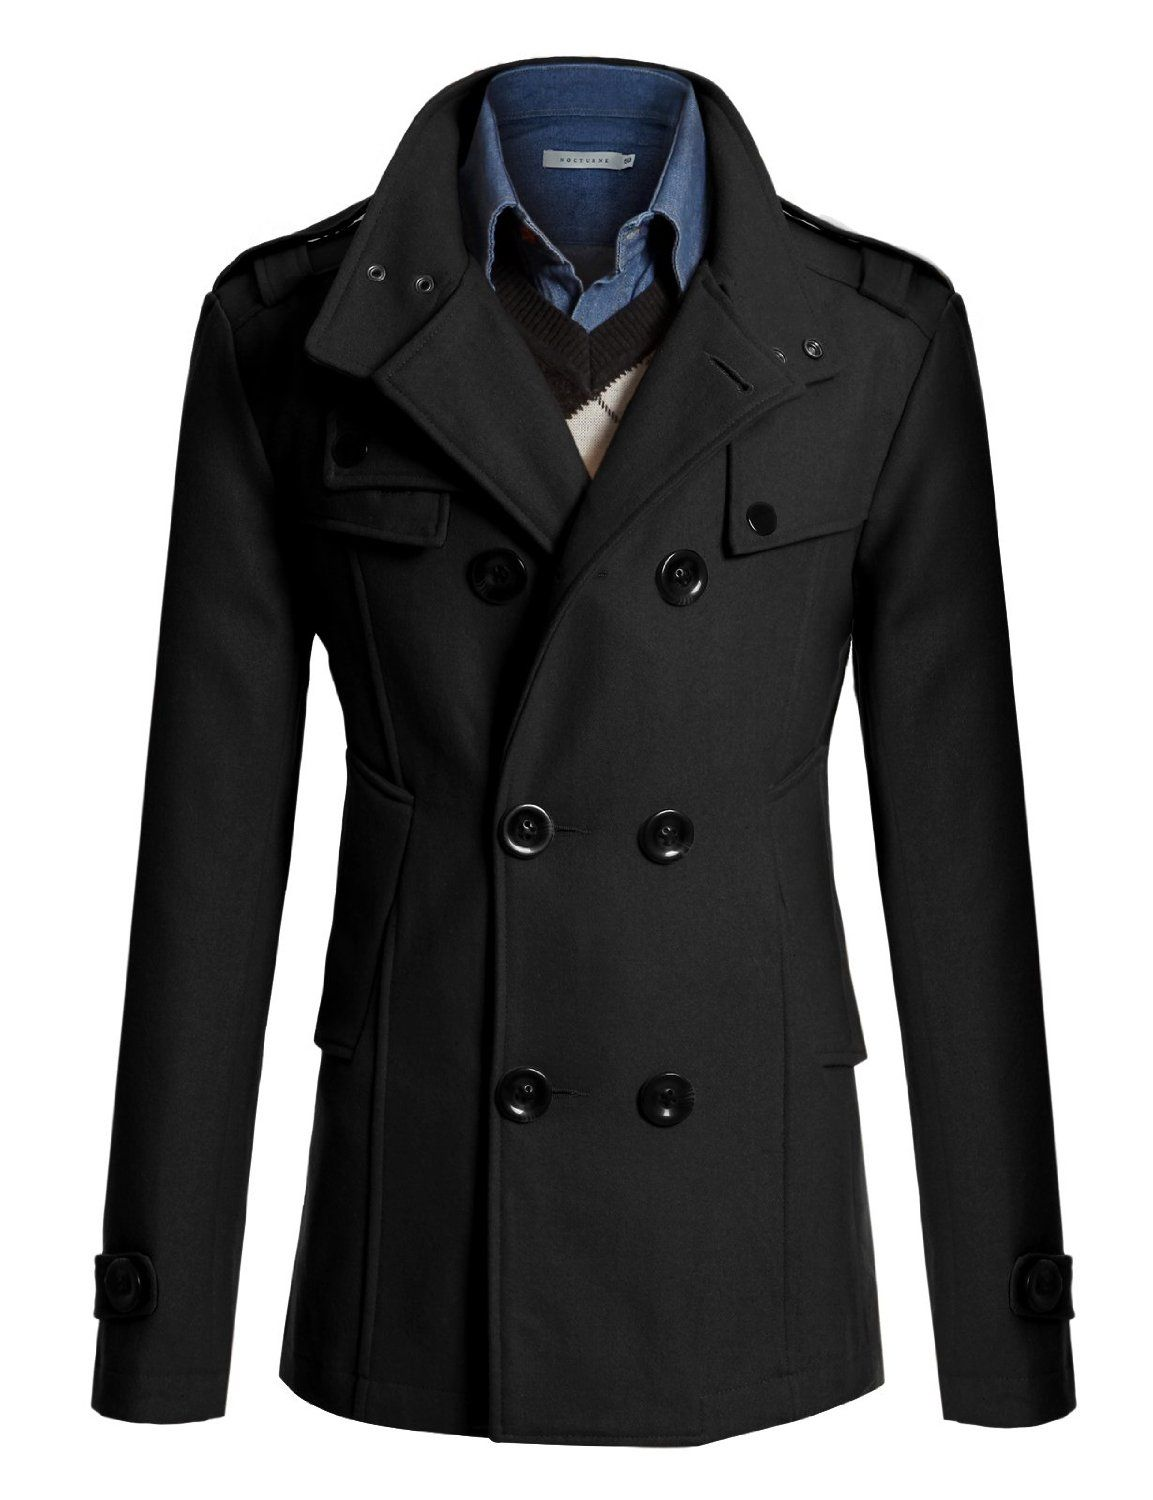 Amazon.com: Doublju Mens Half Trench Coat: Clothing | Fashion ...